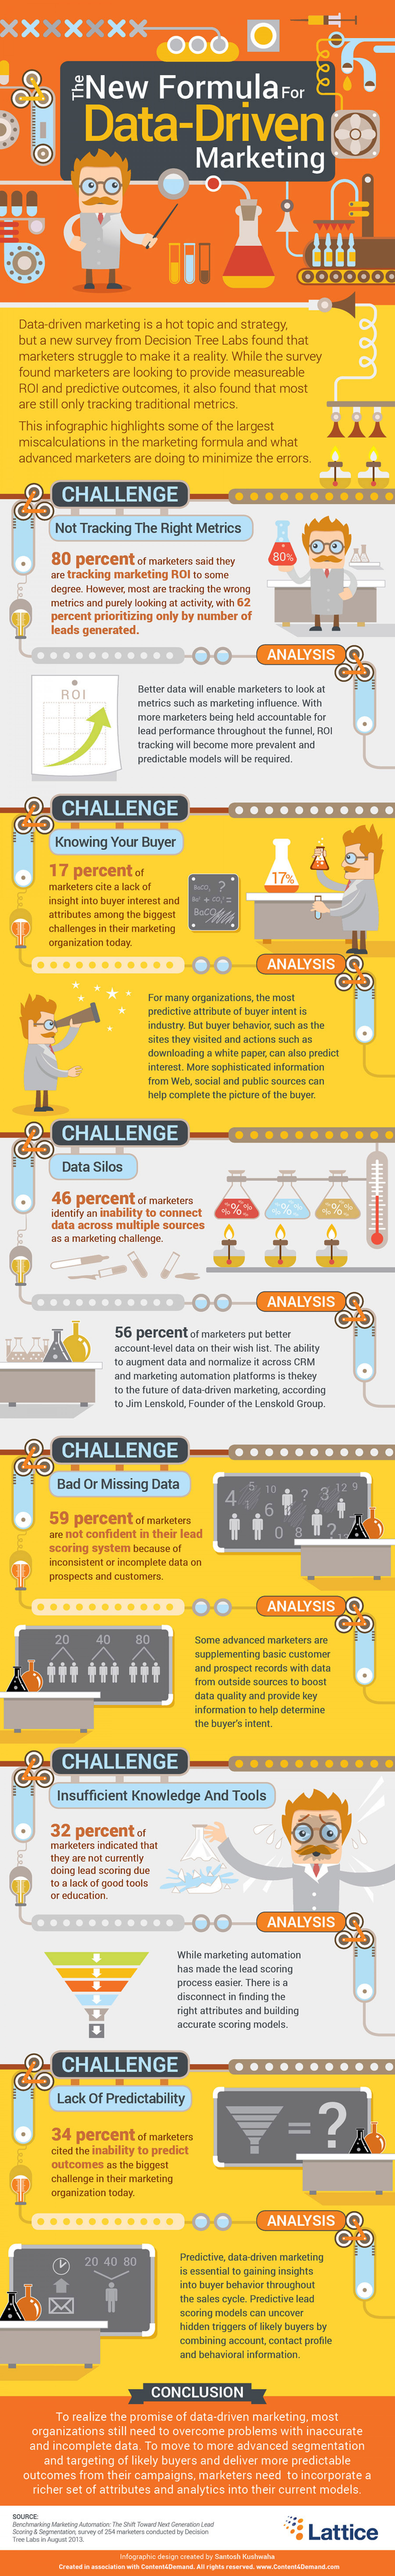 The New Formula For Data-Driven Marketing  Infographic